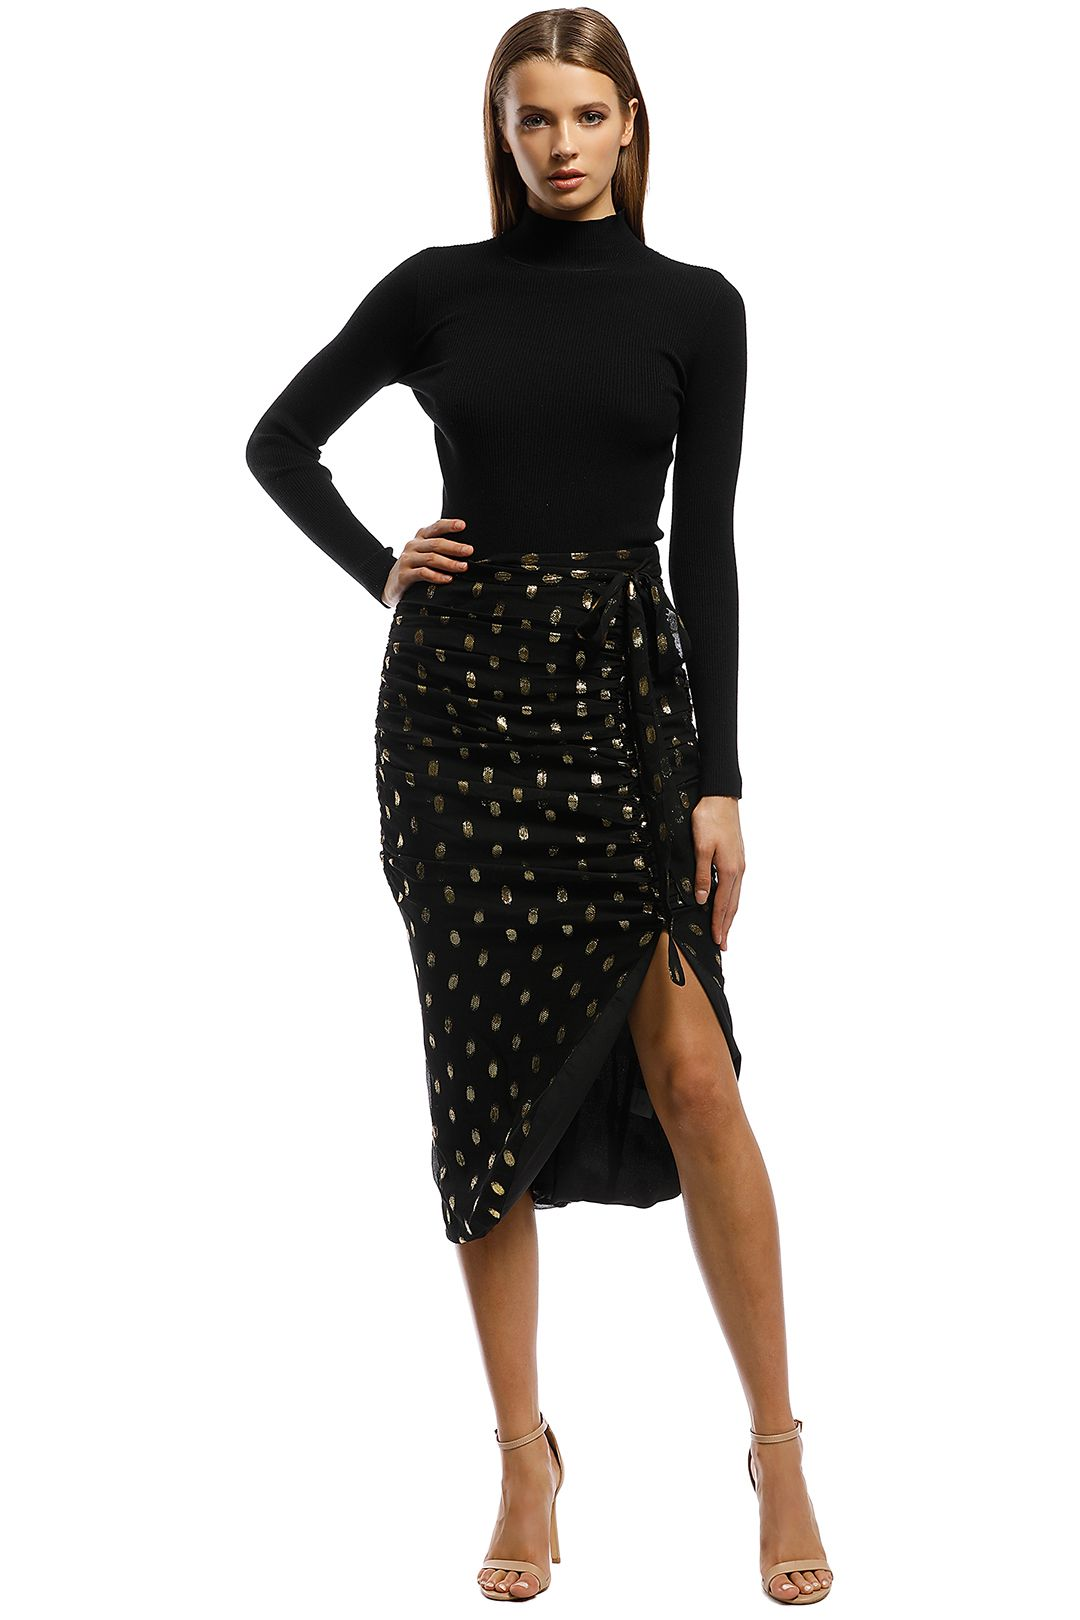 Ministry of Style - Sweet Surrender Skirt - Black Gold - Front